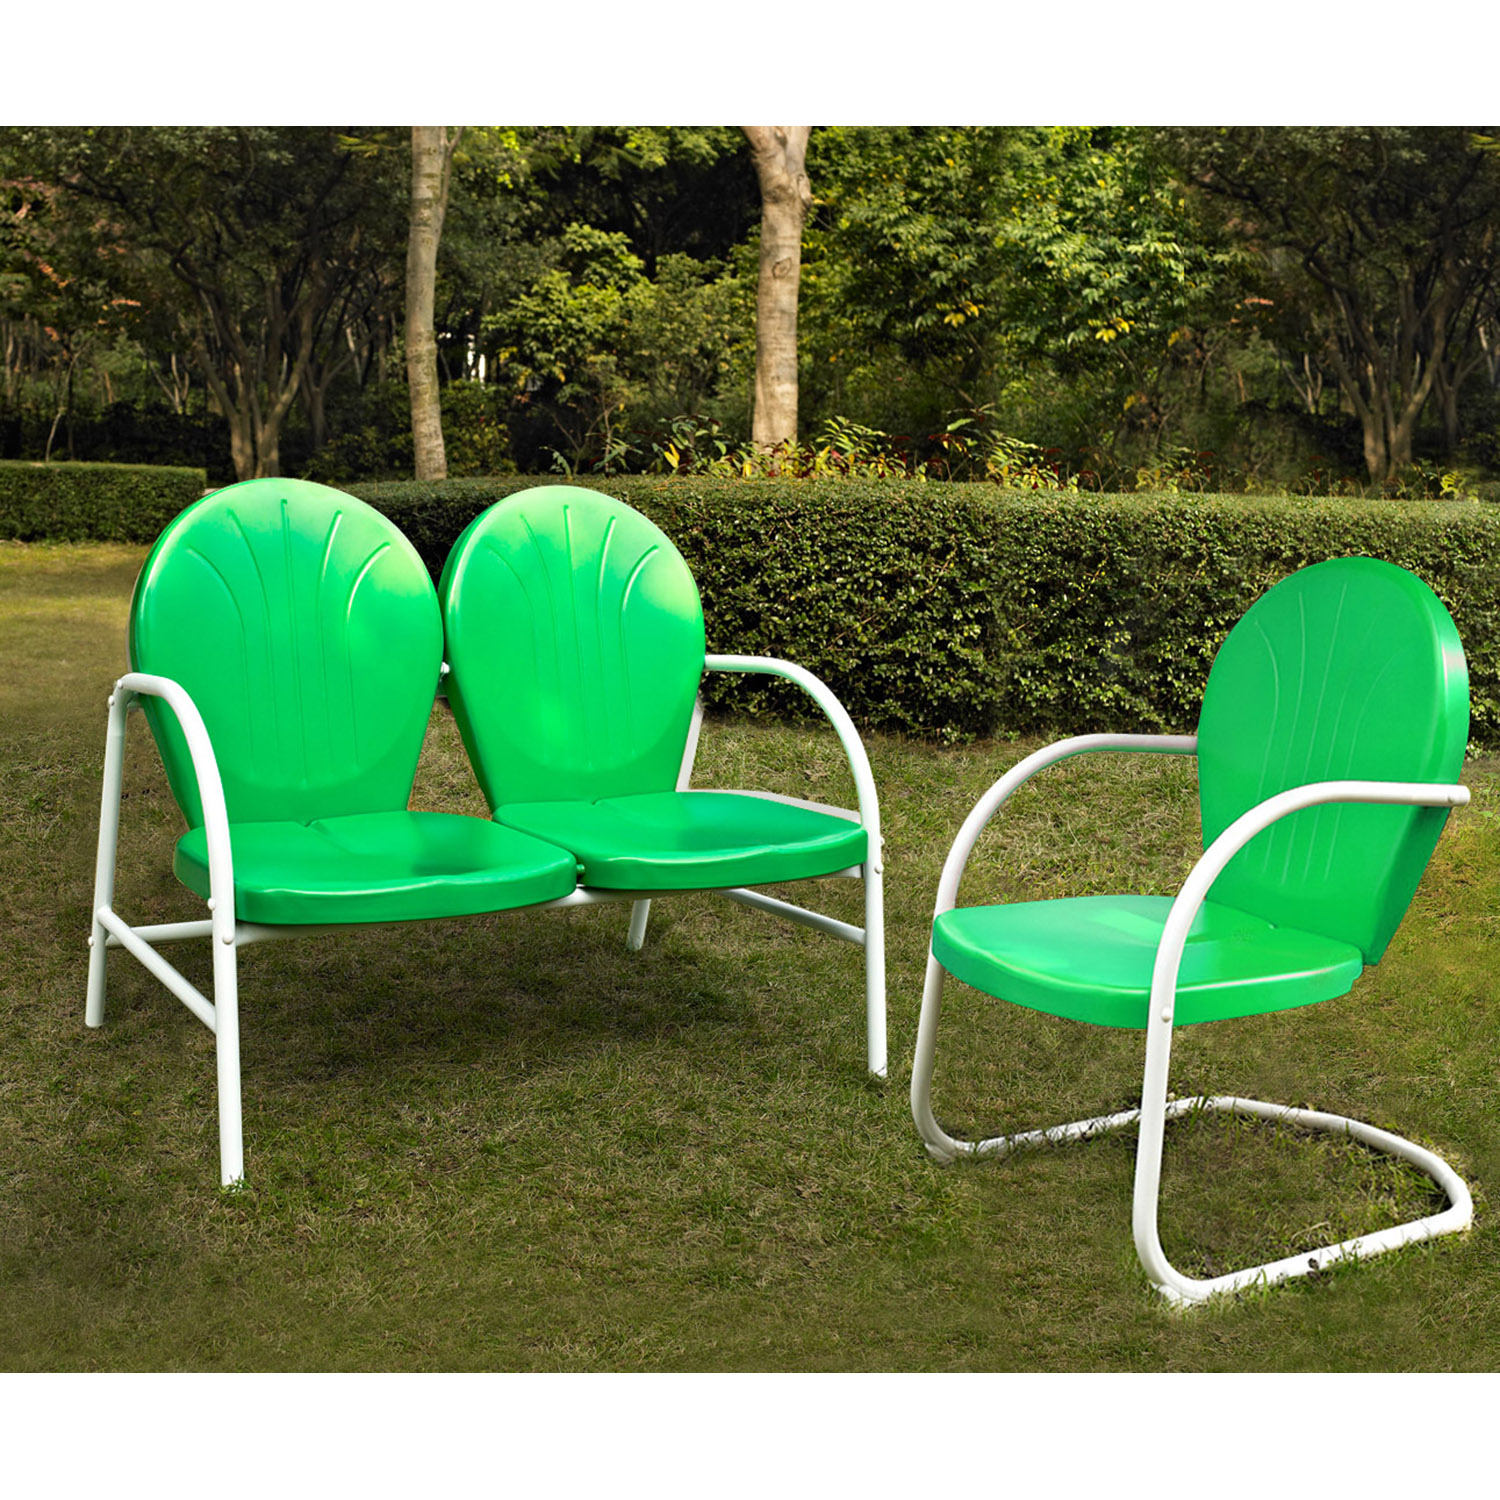 Griffith 2-Piece Metal Outdoor Conversation Seating Set - Grasshopper Green - CROS-KO10005GR